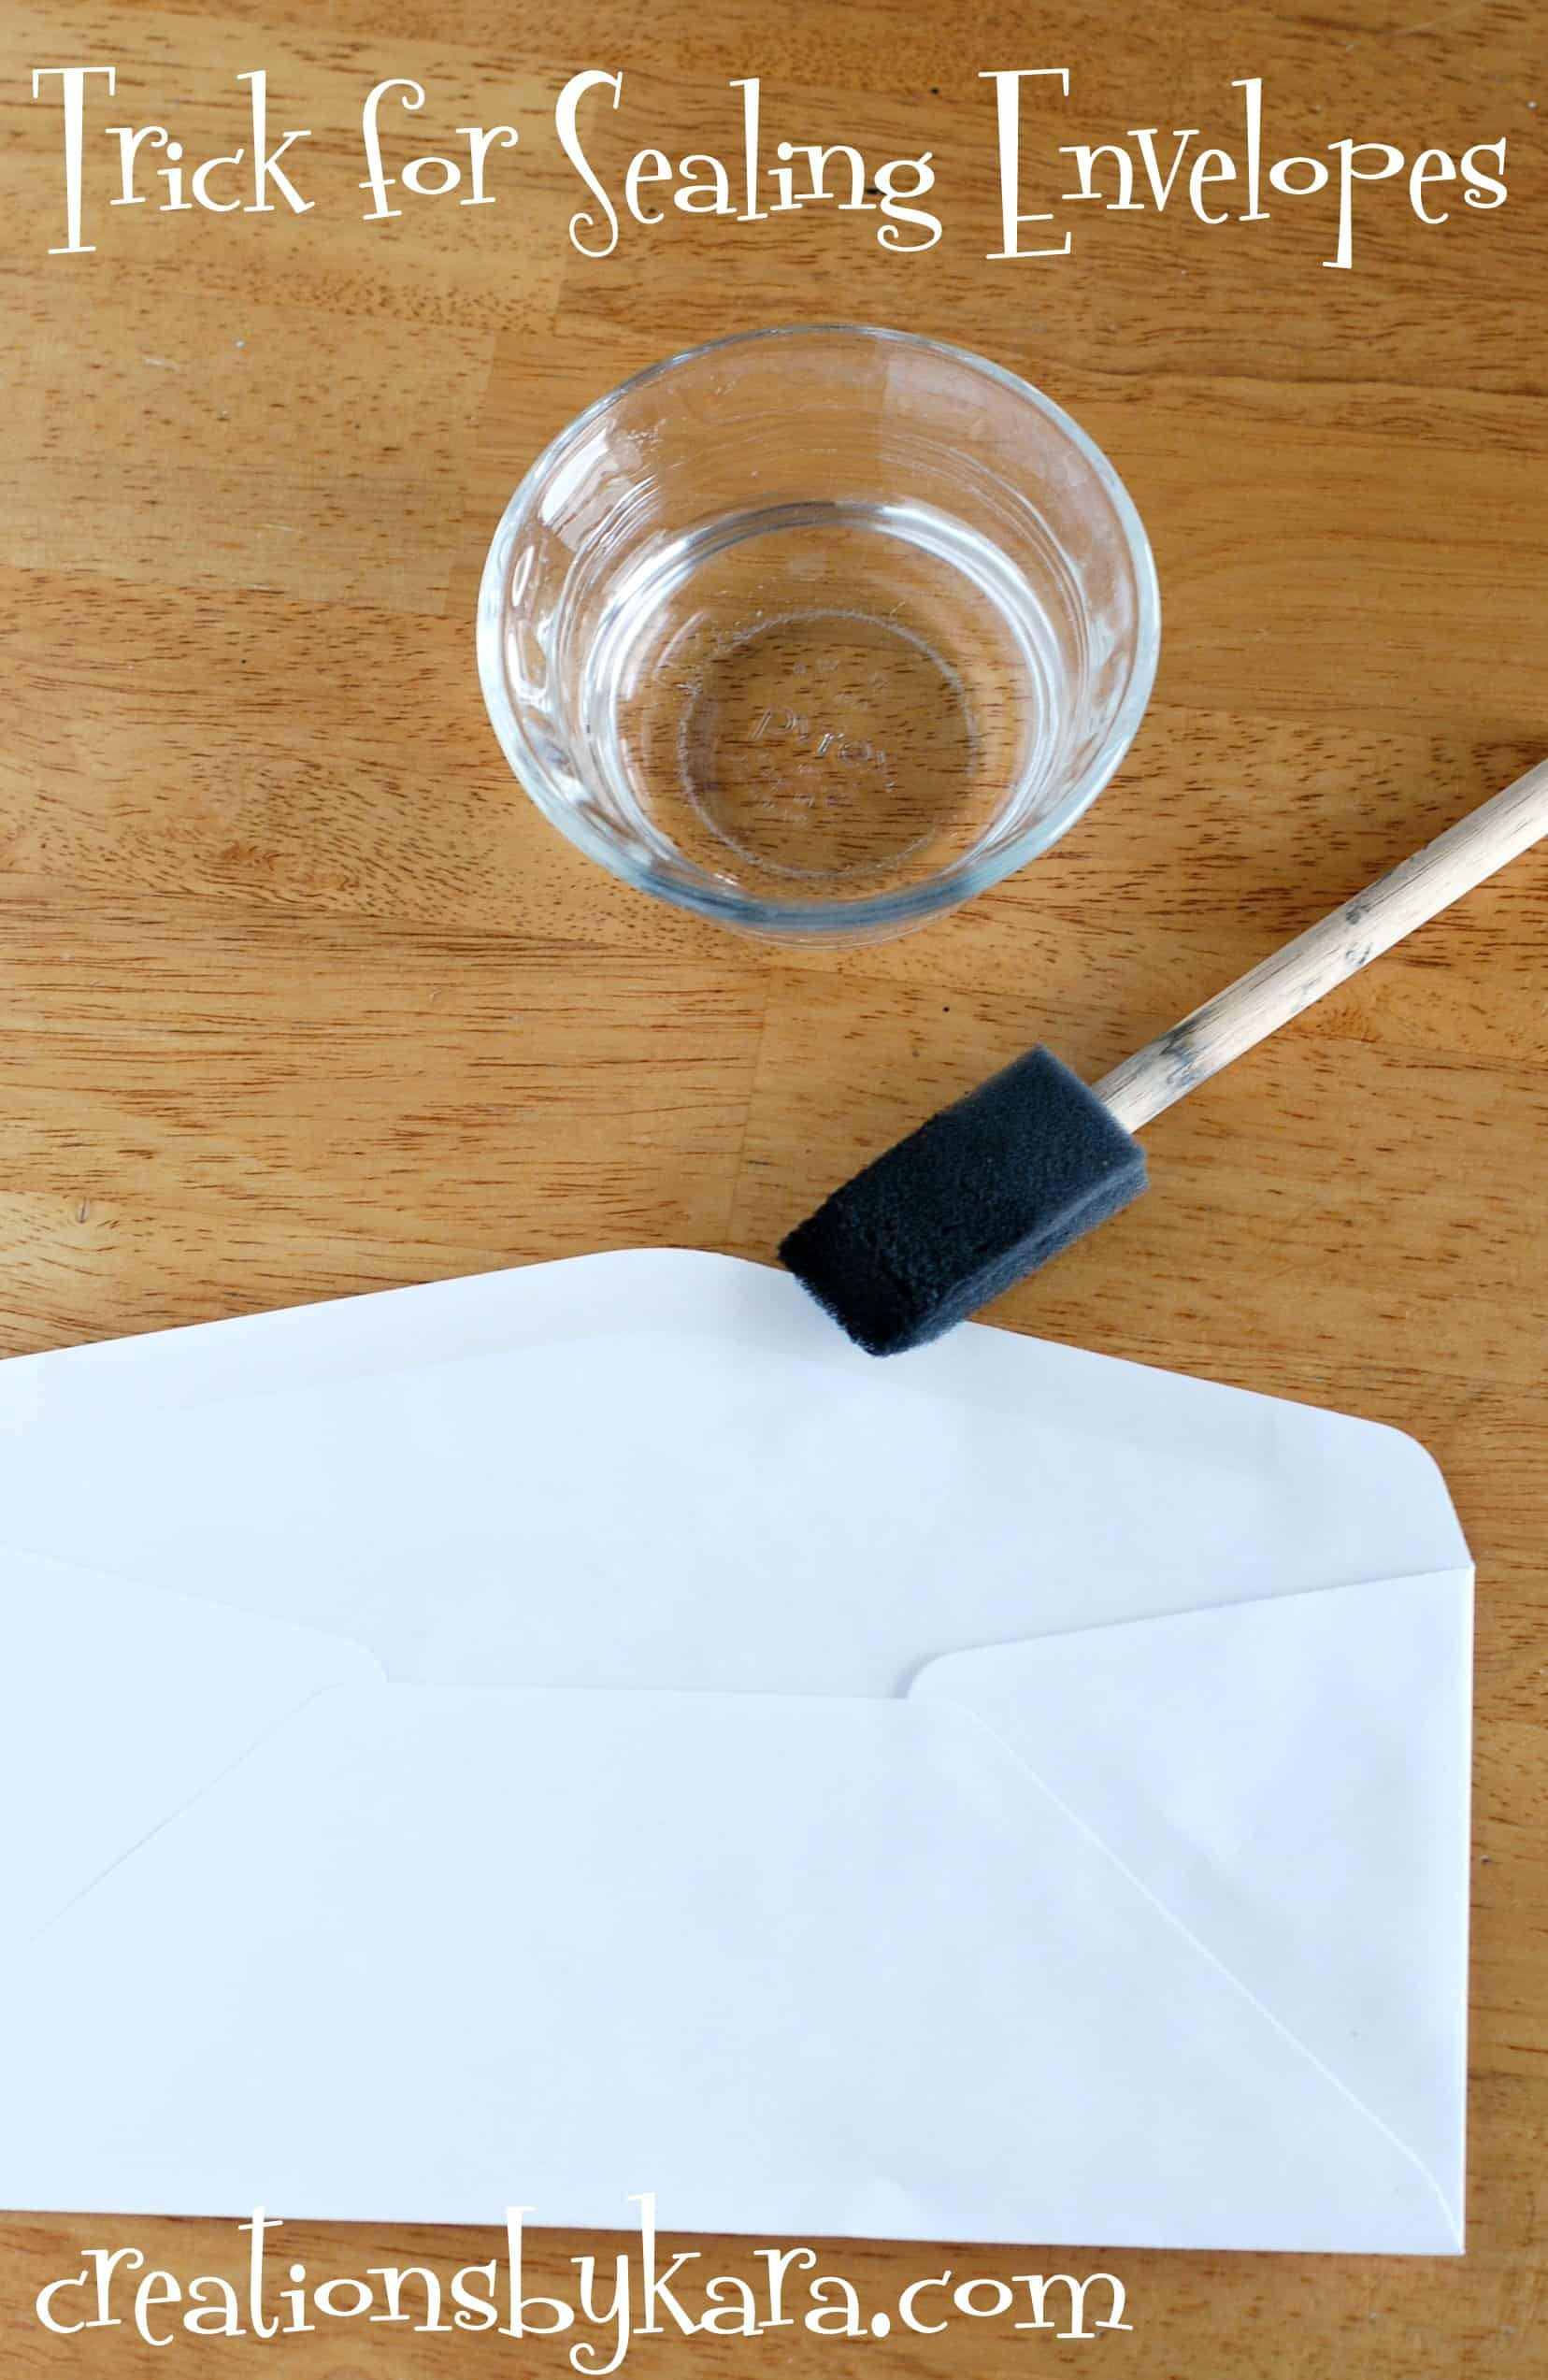 How To Seal an Envelope Without Licking It